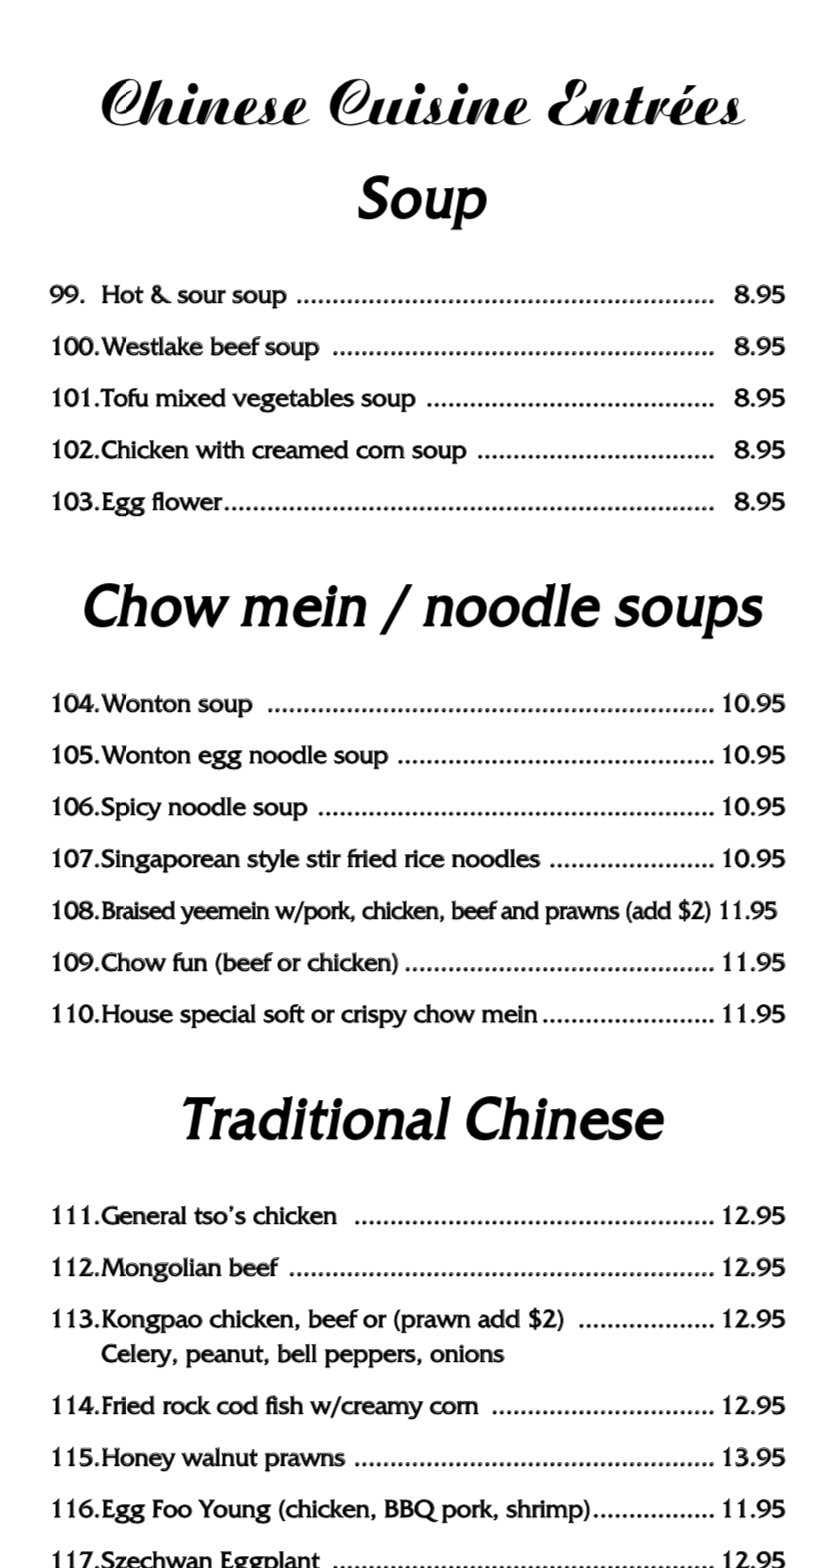 Chinese cuirse entree